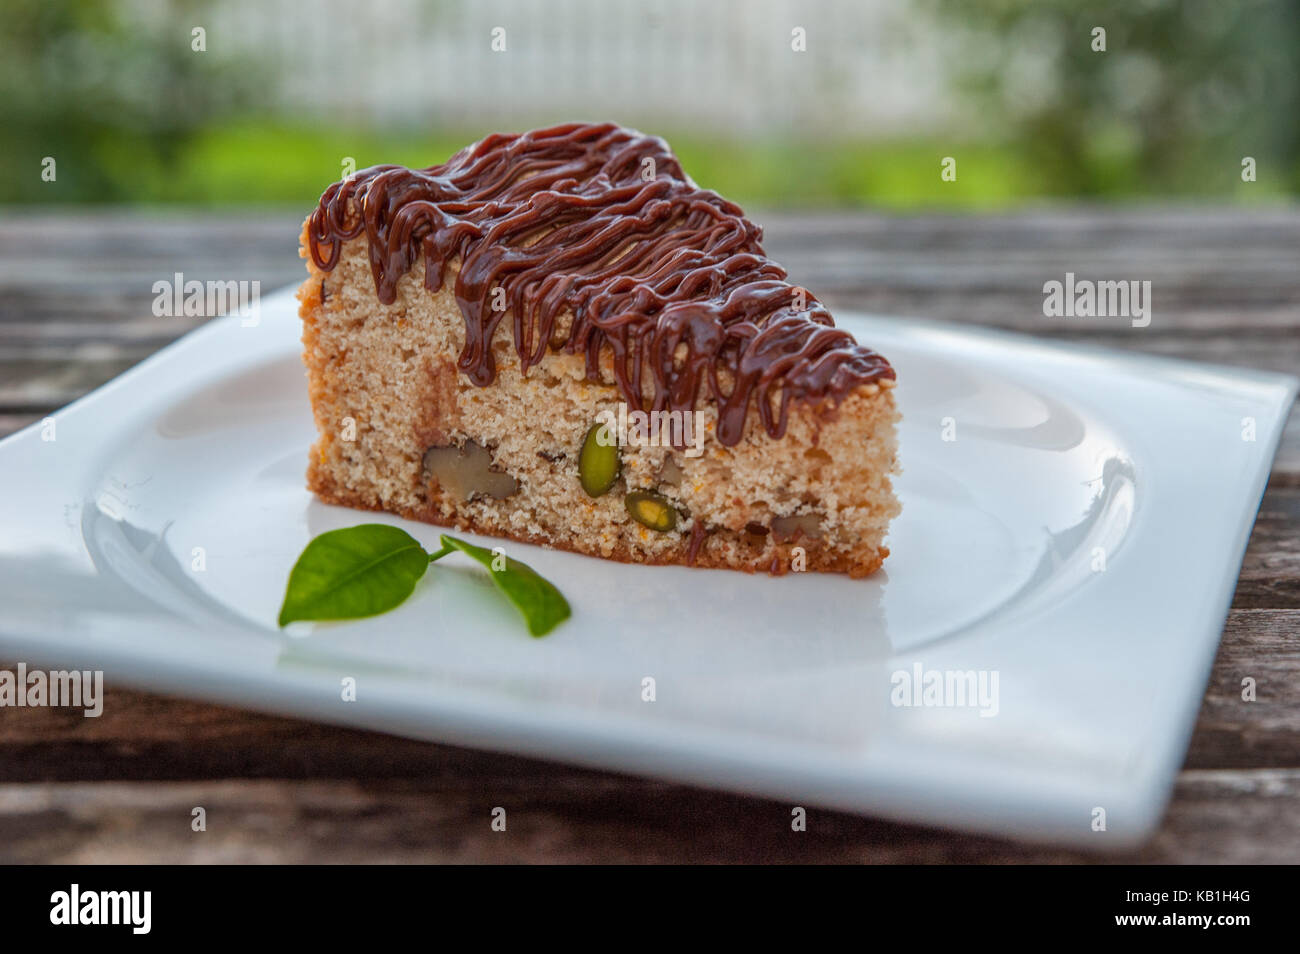 Homemade chocolate cake with cup of coffee Stock Photo